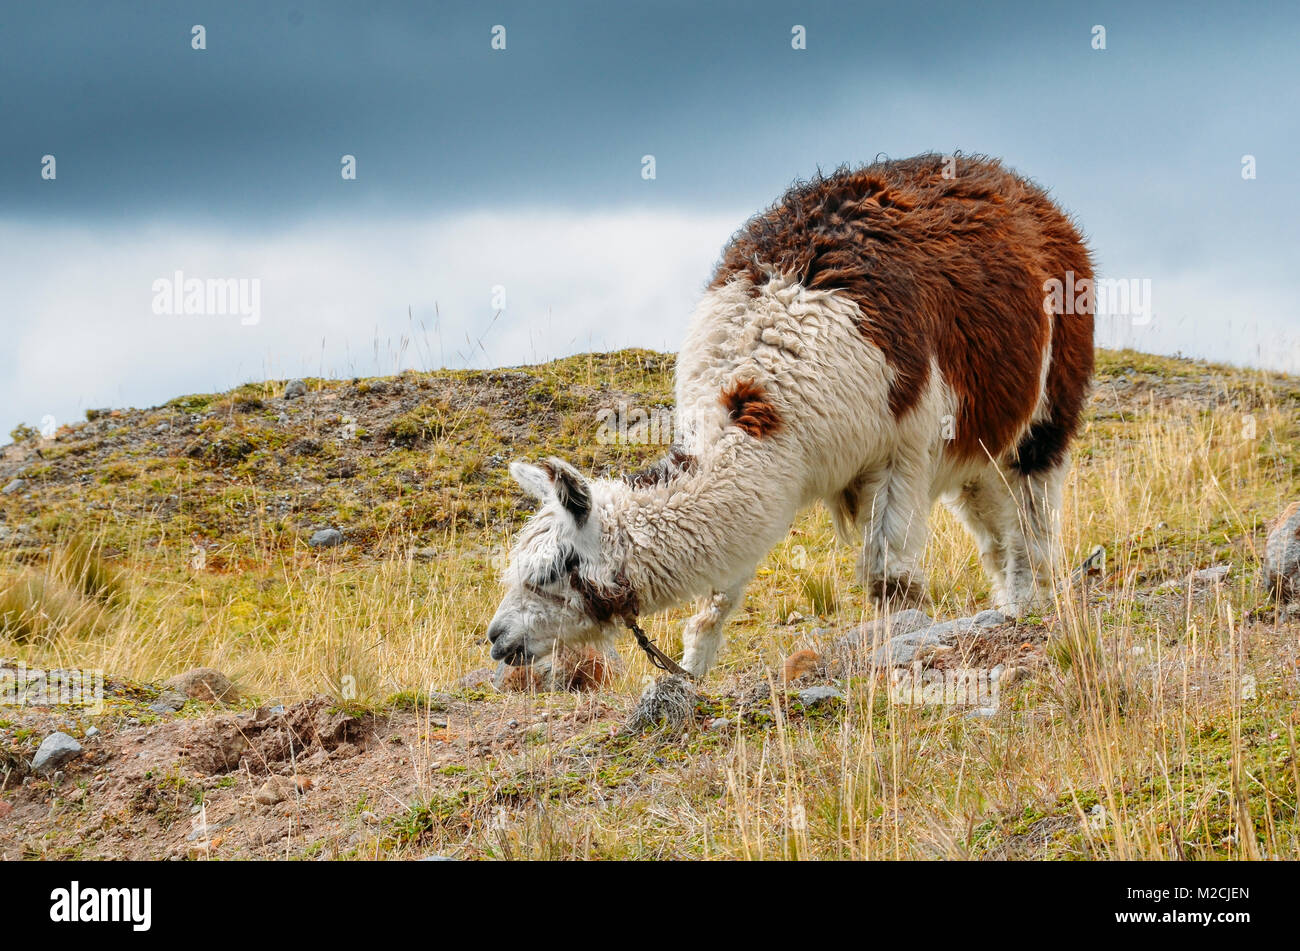 Llama is a domesticated South American camelid, widely used as a meat and pack animal by Andean cultures since the - Stock Image